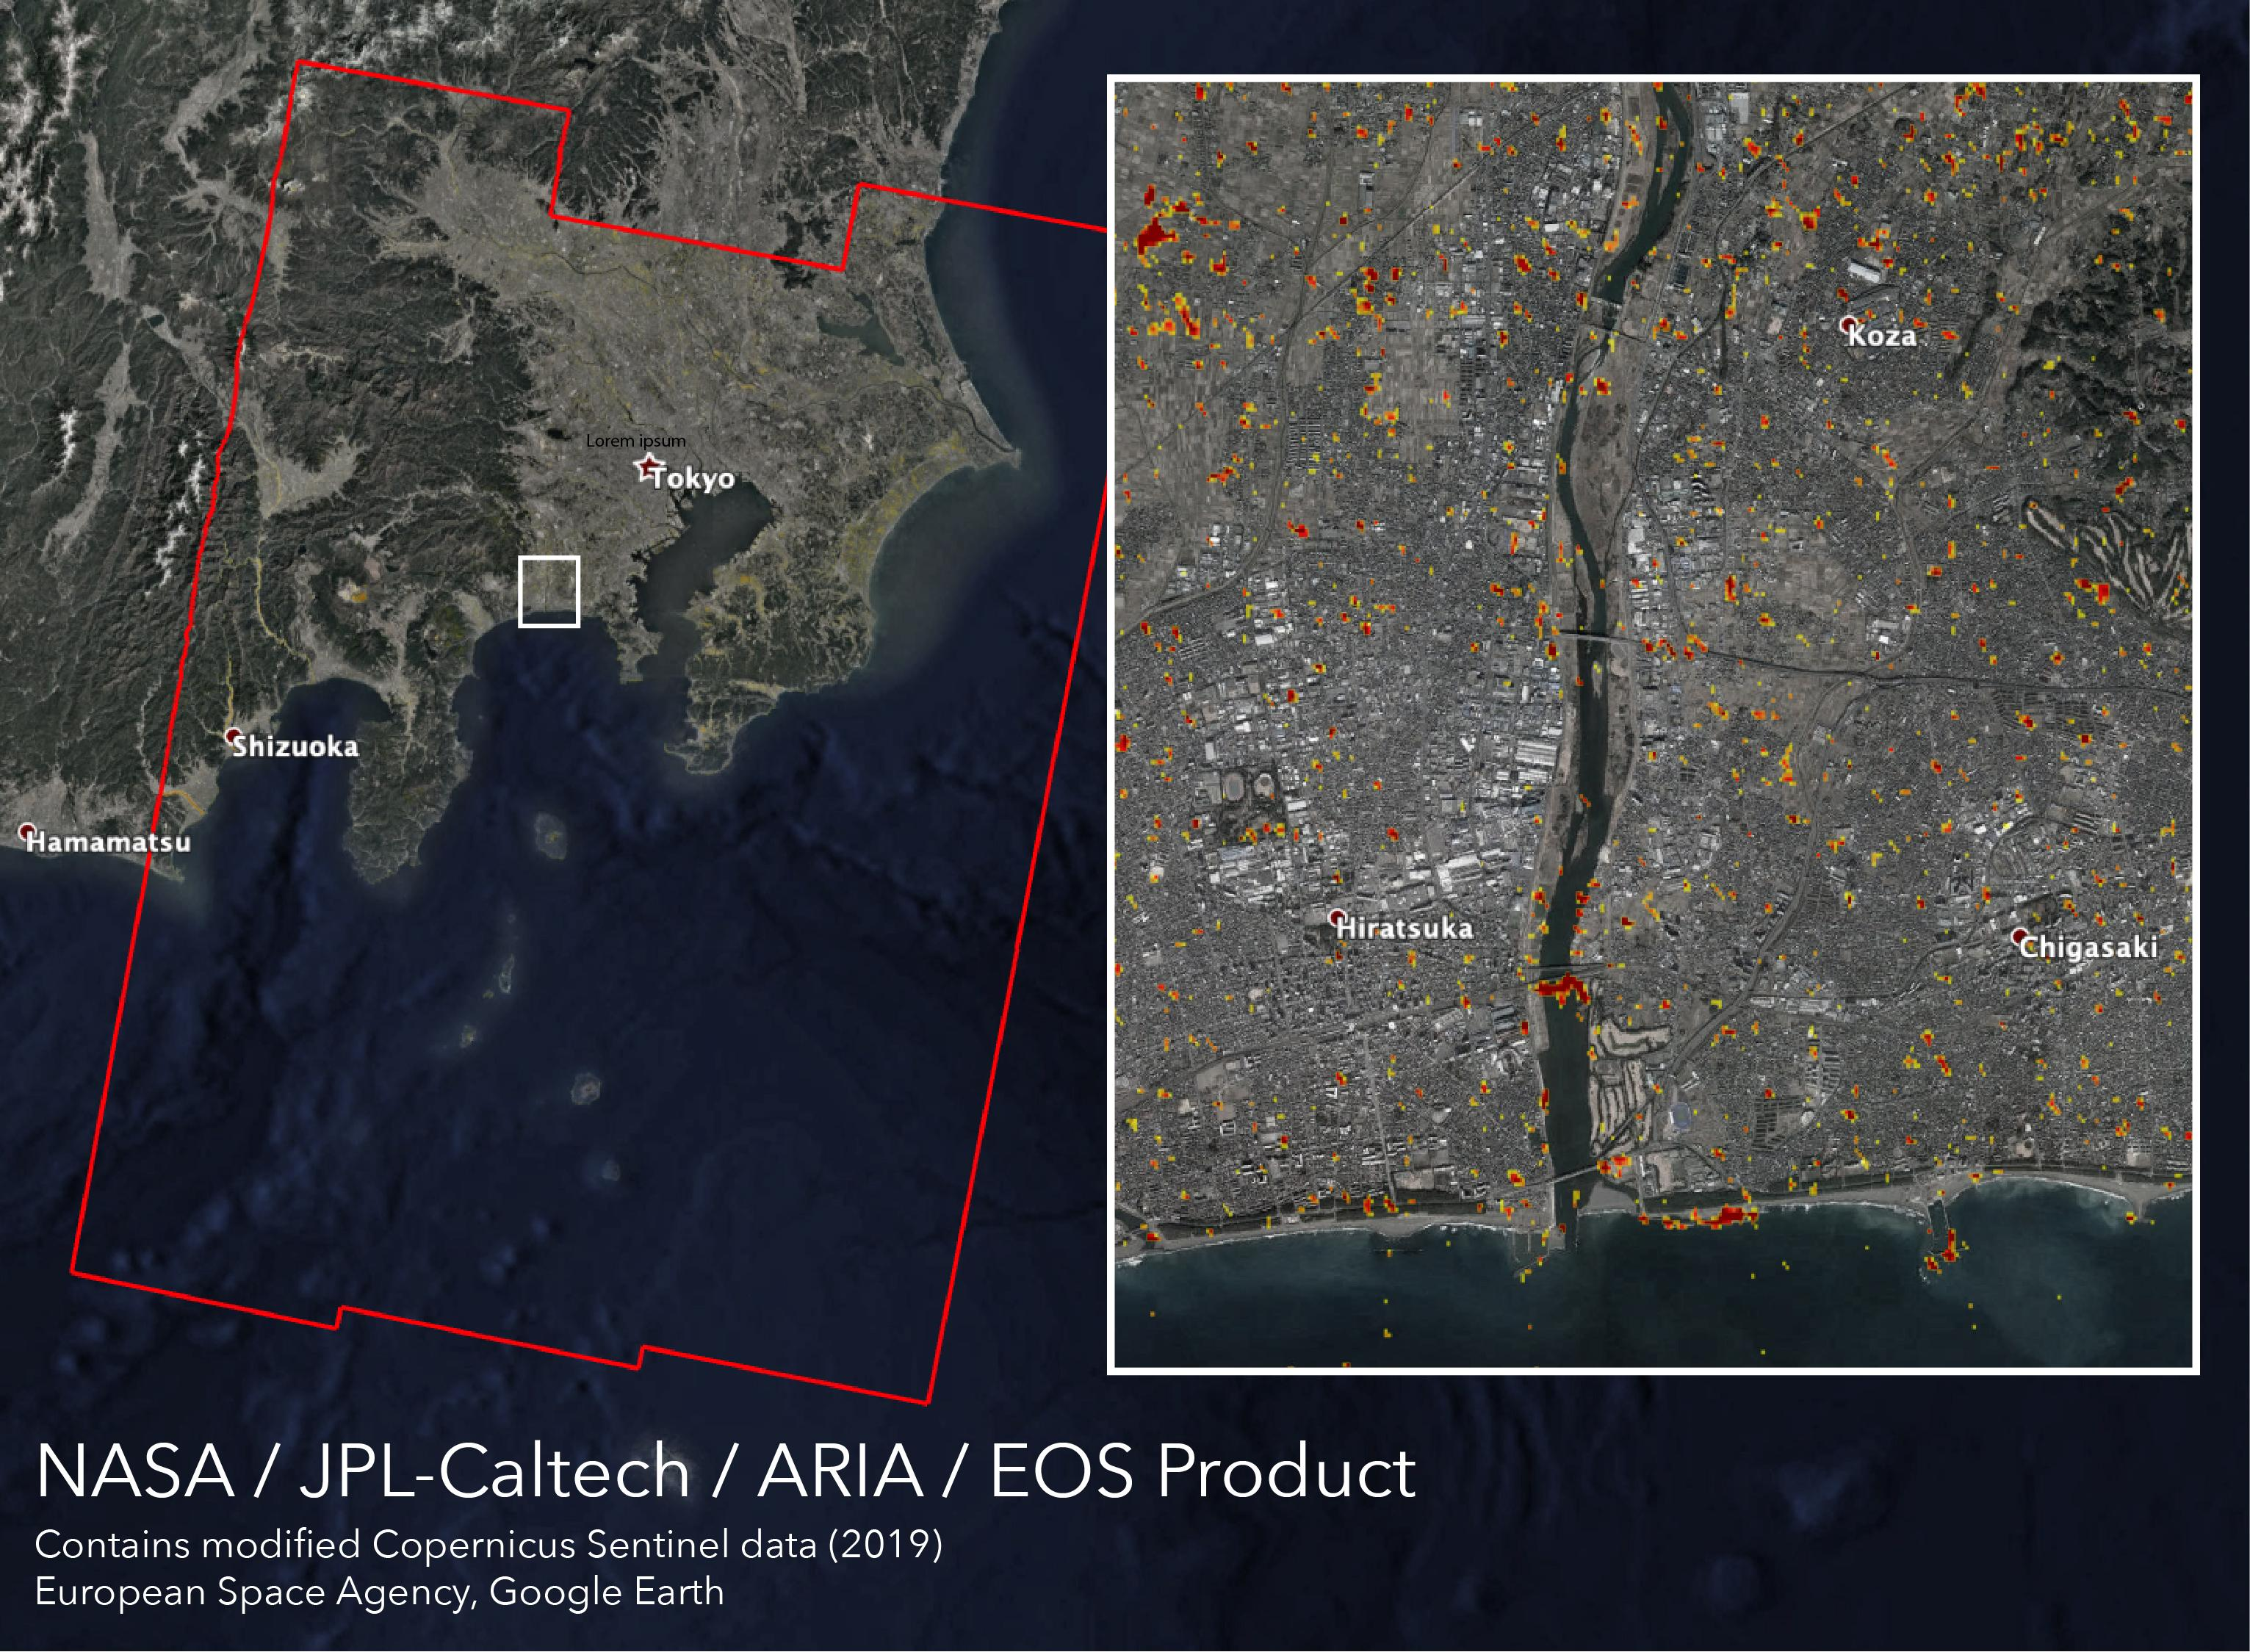 NASAs ARIA team, along with the Earth Observatory of Singapore, created this map showing damage from Typhoon Hagibis, which struck southwest of Tokyo on Oct. 12, 2019.